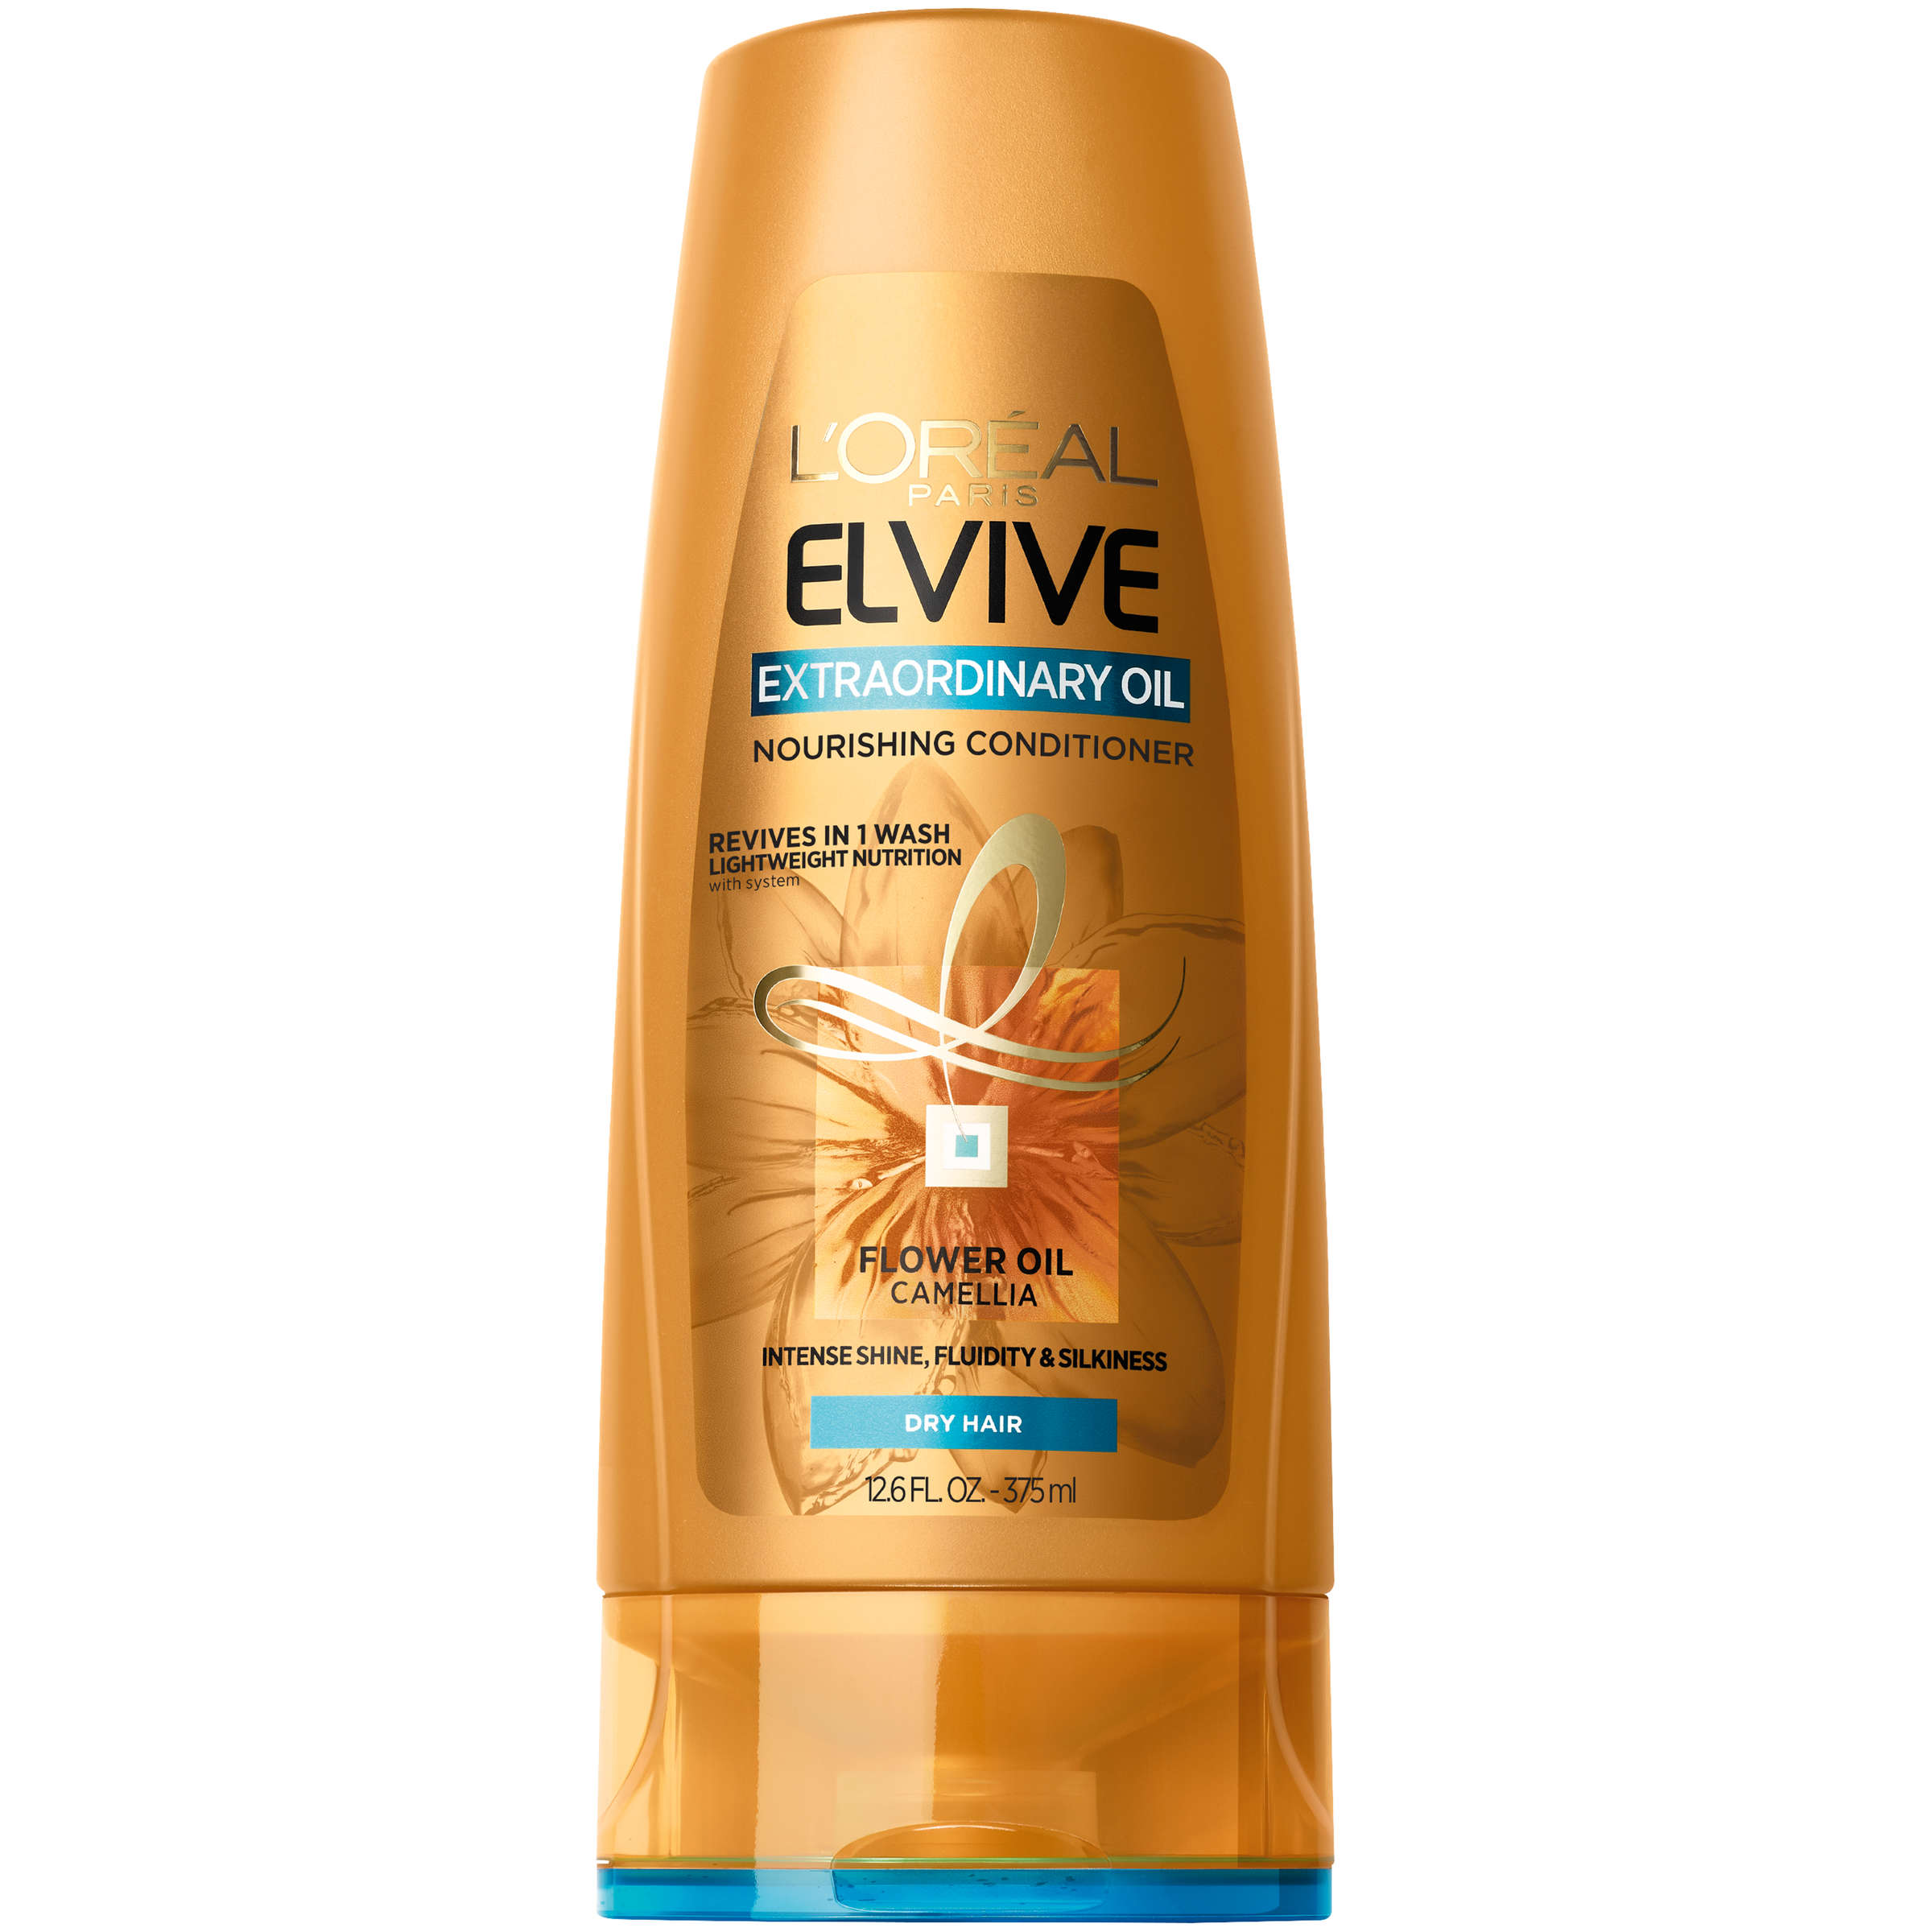 L'Oreal Paris Elvive Extraordinary Oil Conditioner 12.6 FL OZ